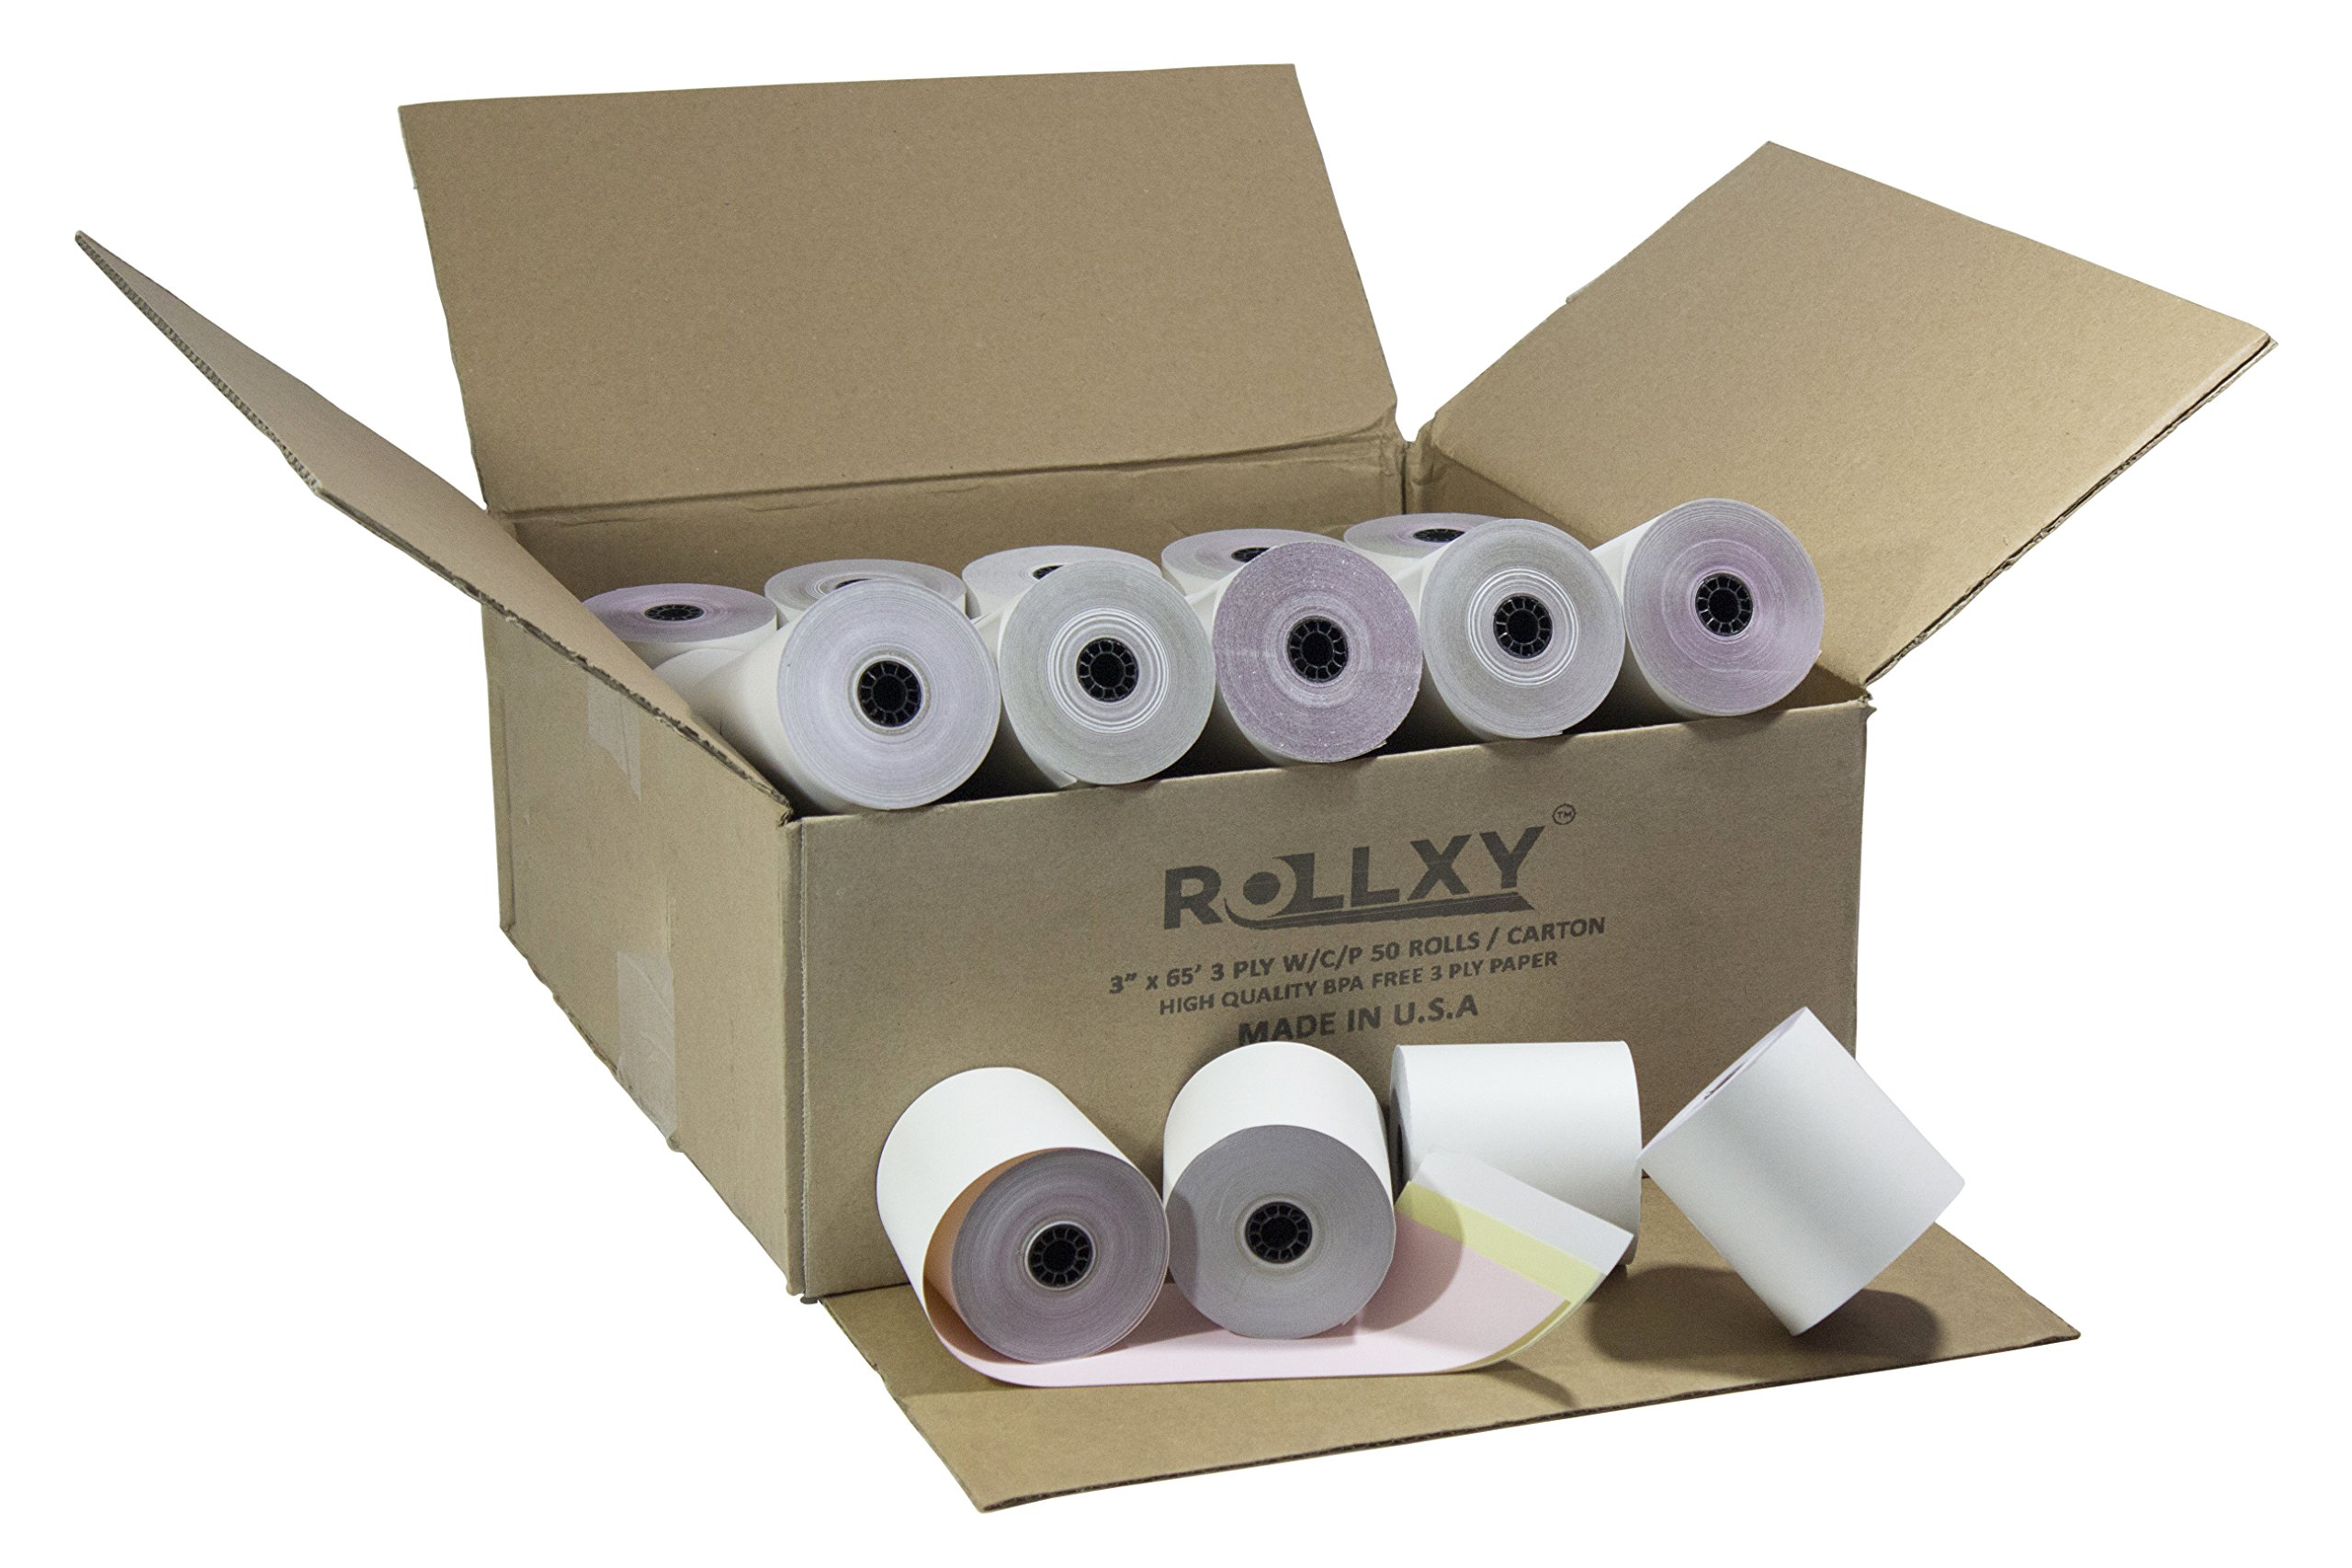 Pospaperroll 3'' X 65' 3-ply Carbonless White/canary/pink Roll Paper 50 Rolls Compatible Item Numbers: 3409, 115-146, Zc3070wcp, 18-333, 300ncrwcp, 07638, 7384, 4012, 9077-0060